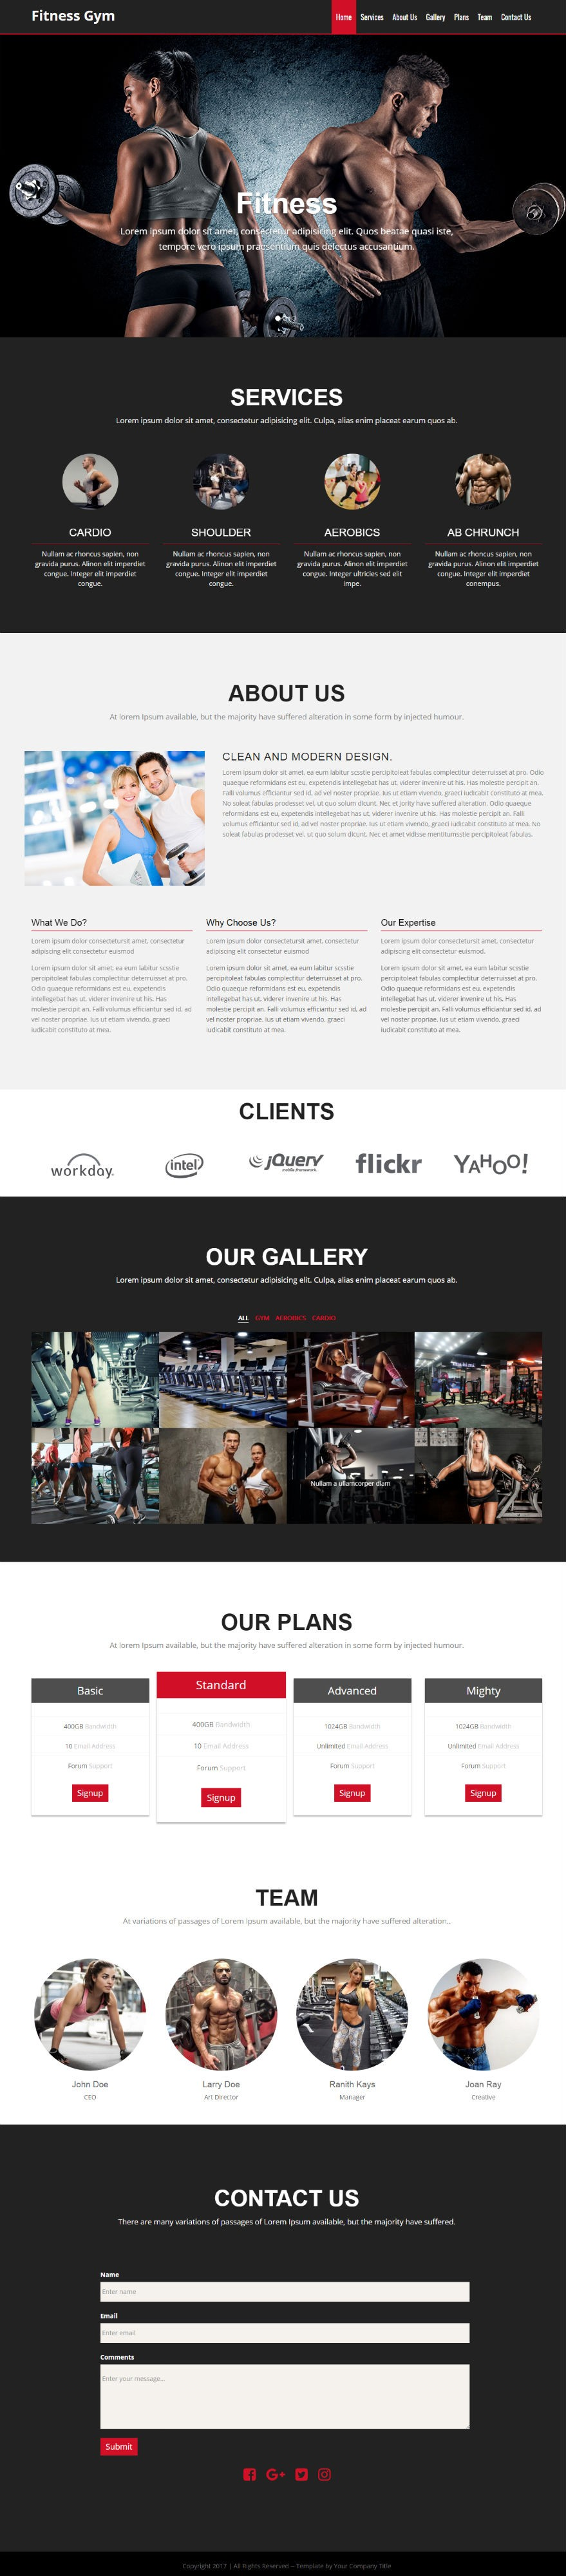 Landing page - Fitness Gym